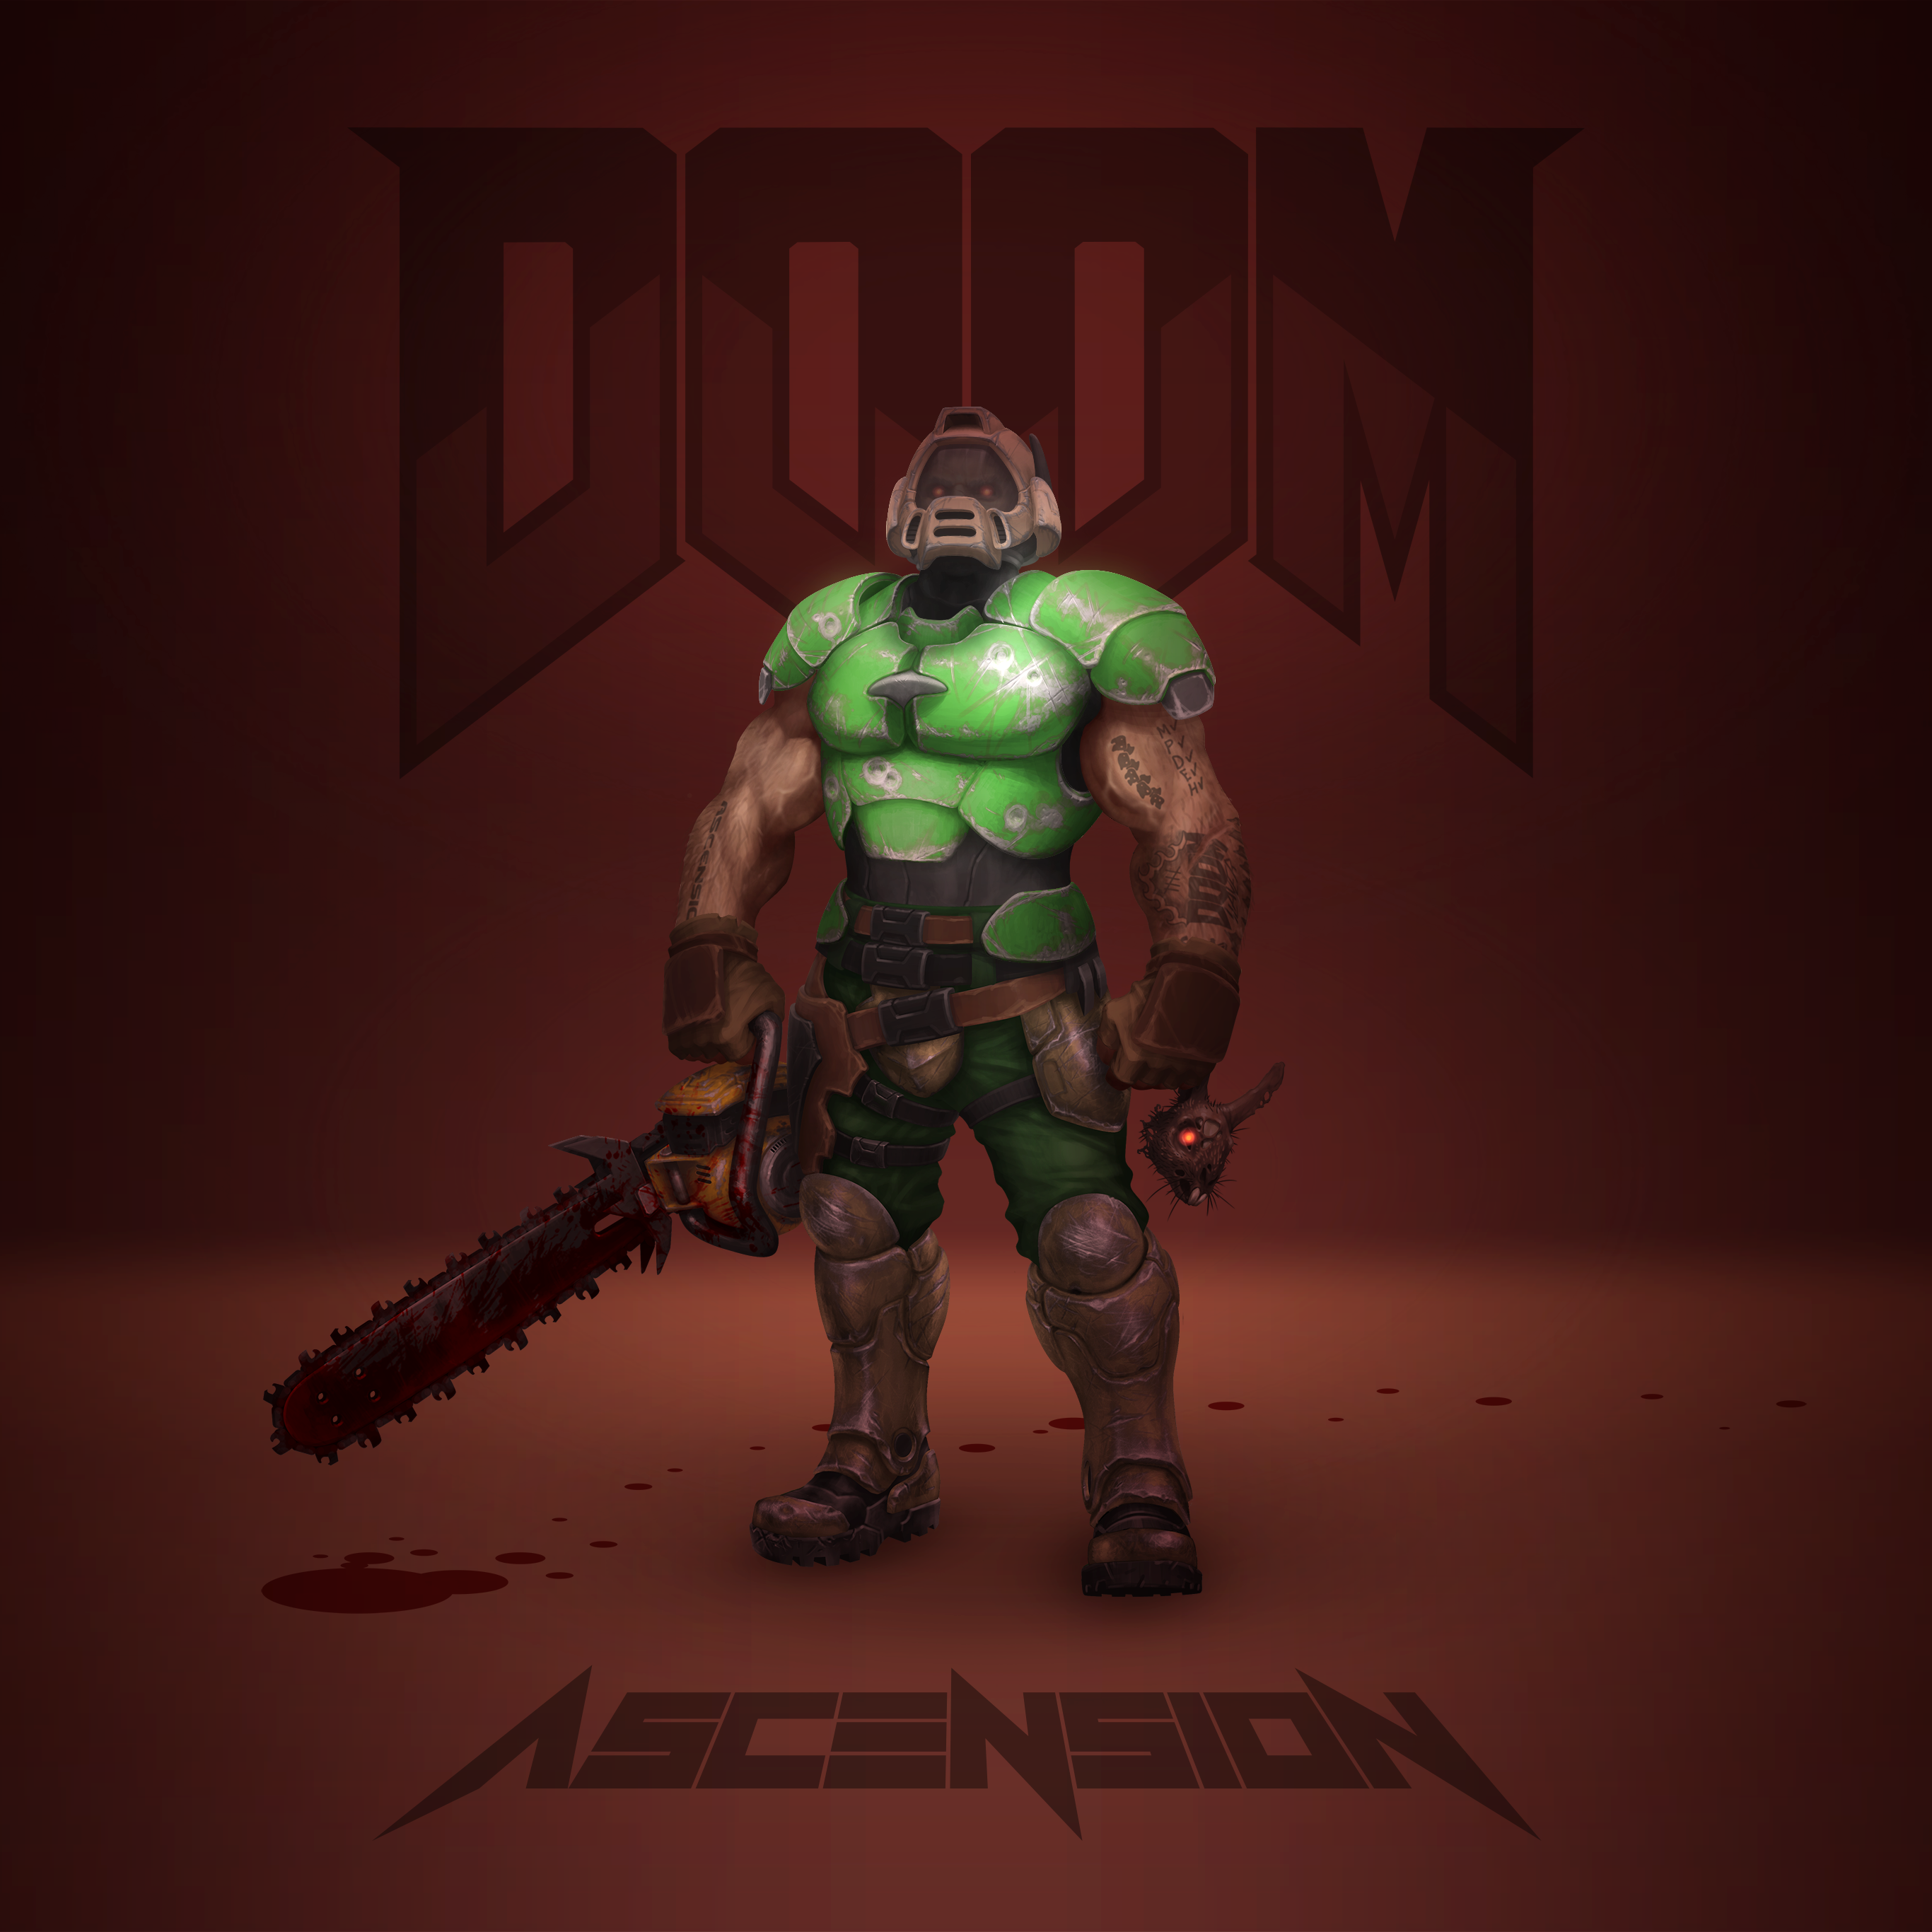 doomguy-n-daisy_armored.png